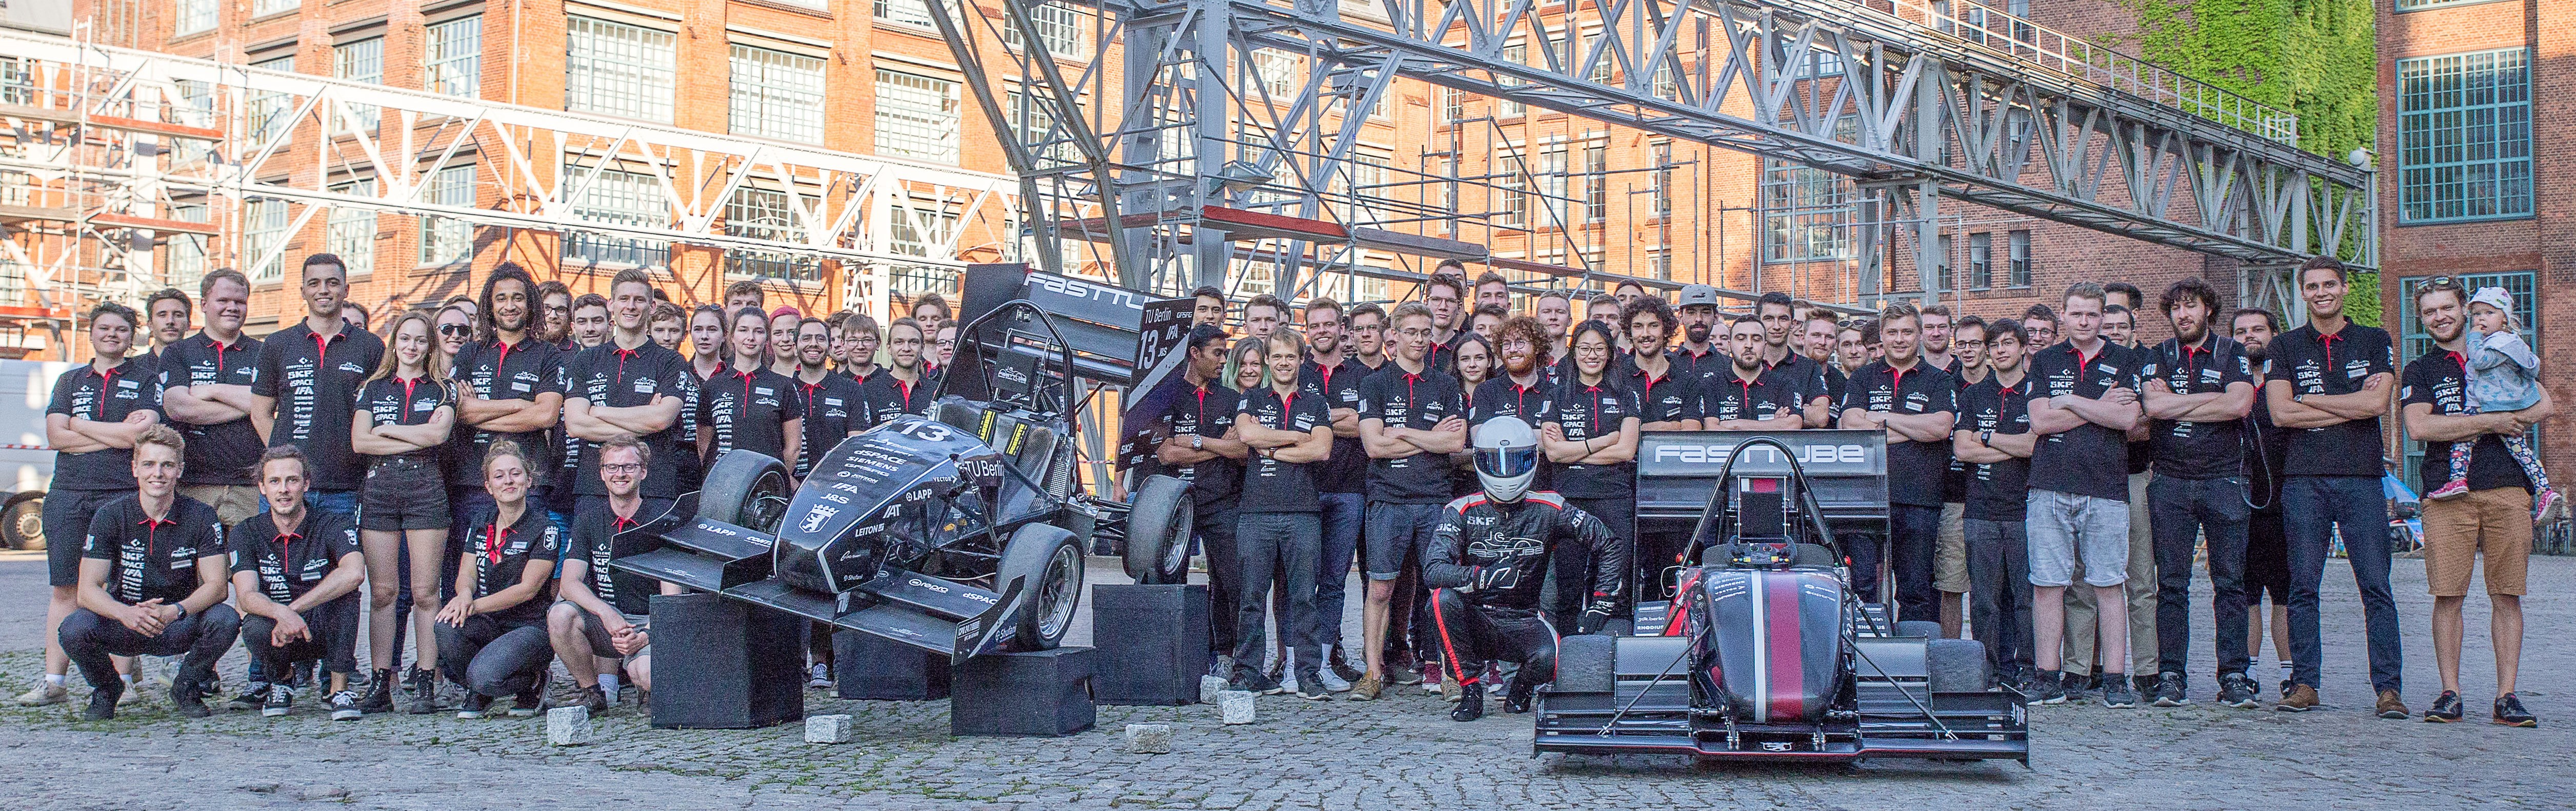 FaSTTUBe Rollout 2019_Team_Copyright FaSTTUBe_Jan Zimmer.jpg